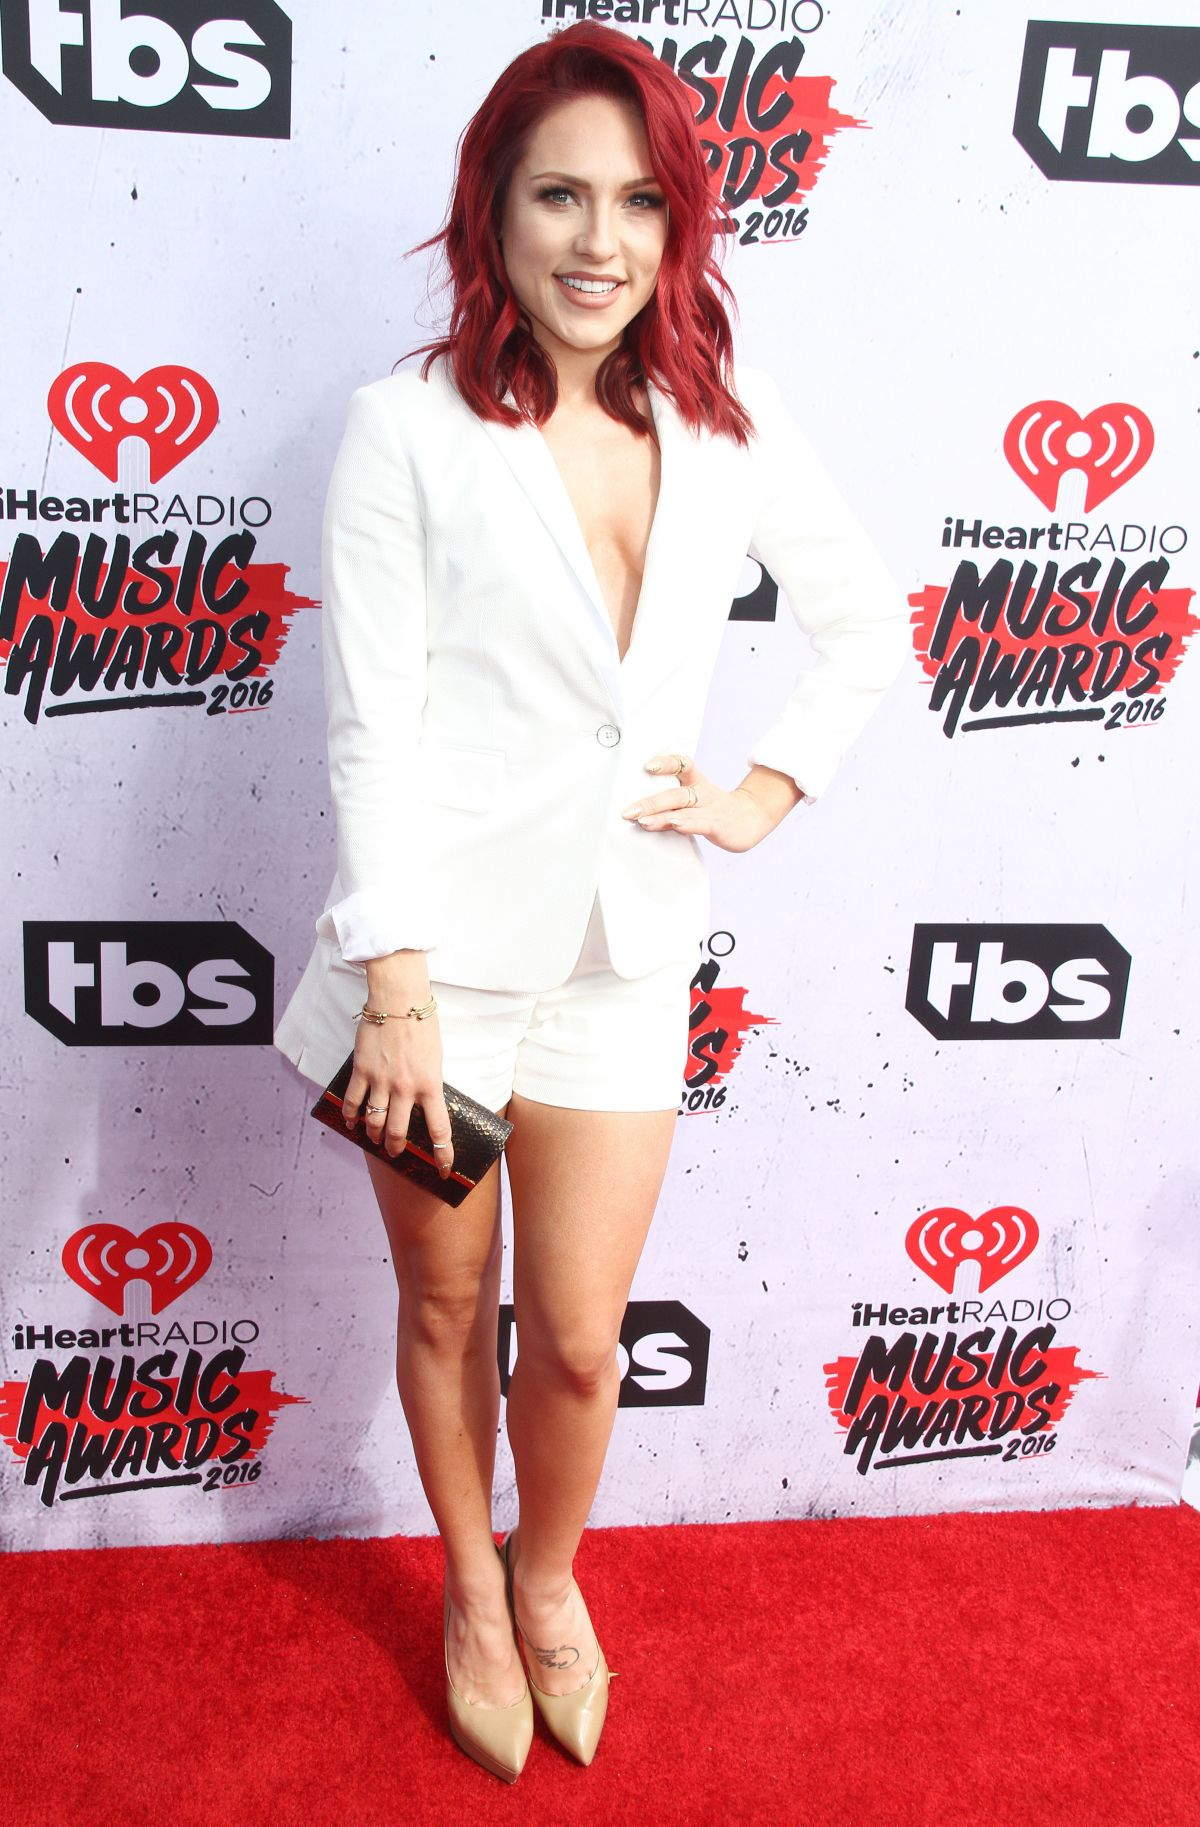 SHARNA BURGESS at iHeartRadio Music Awards in Los Angeles 04/03/2016